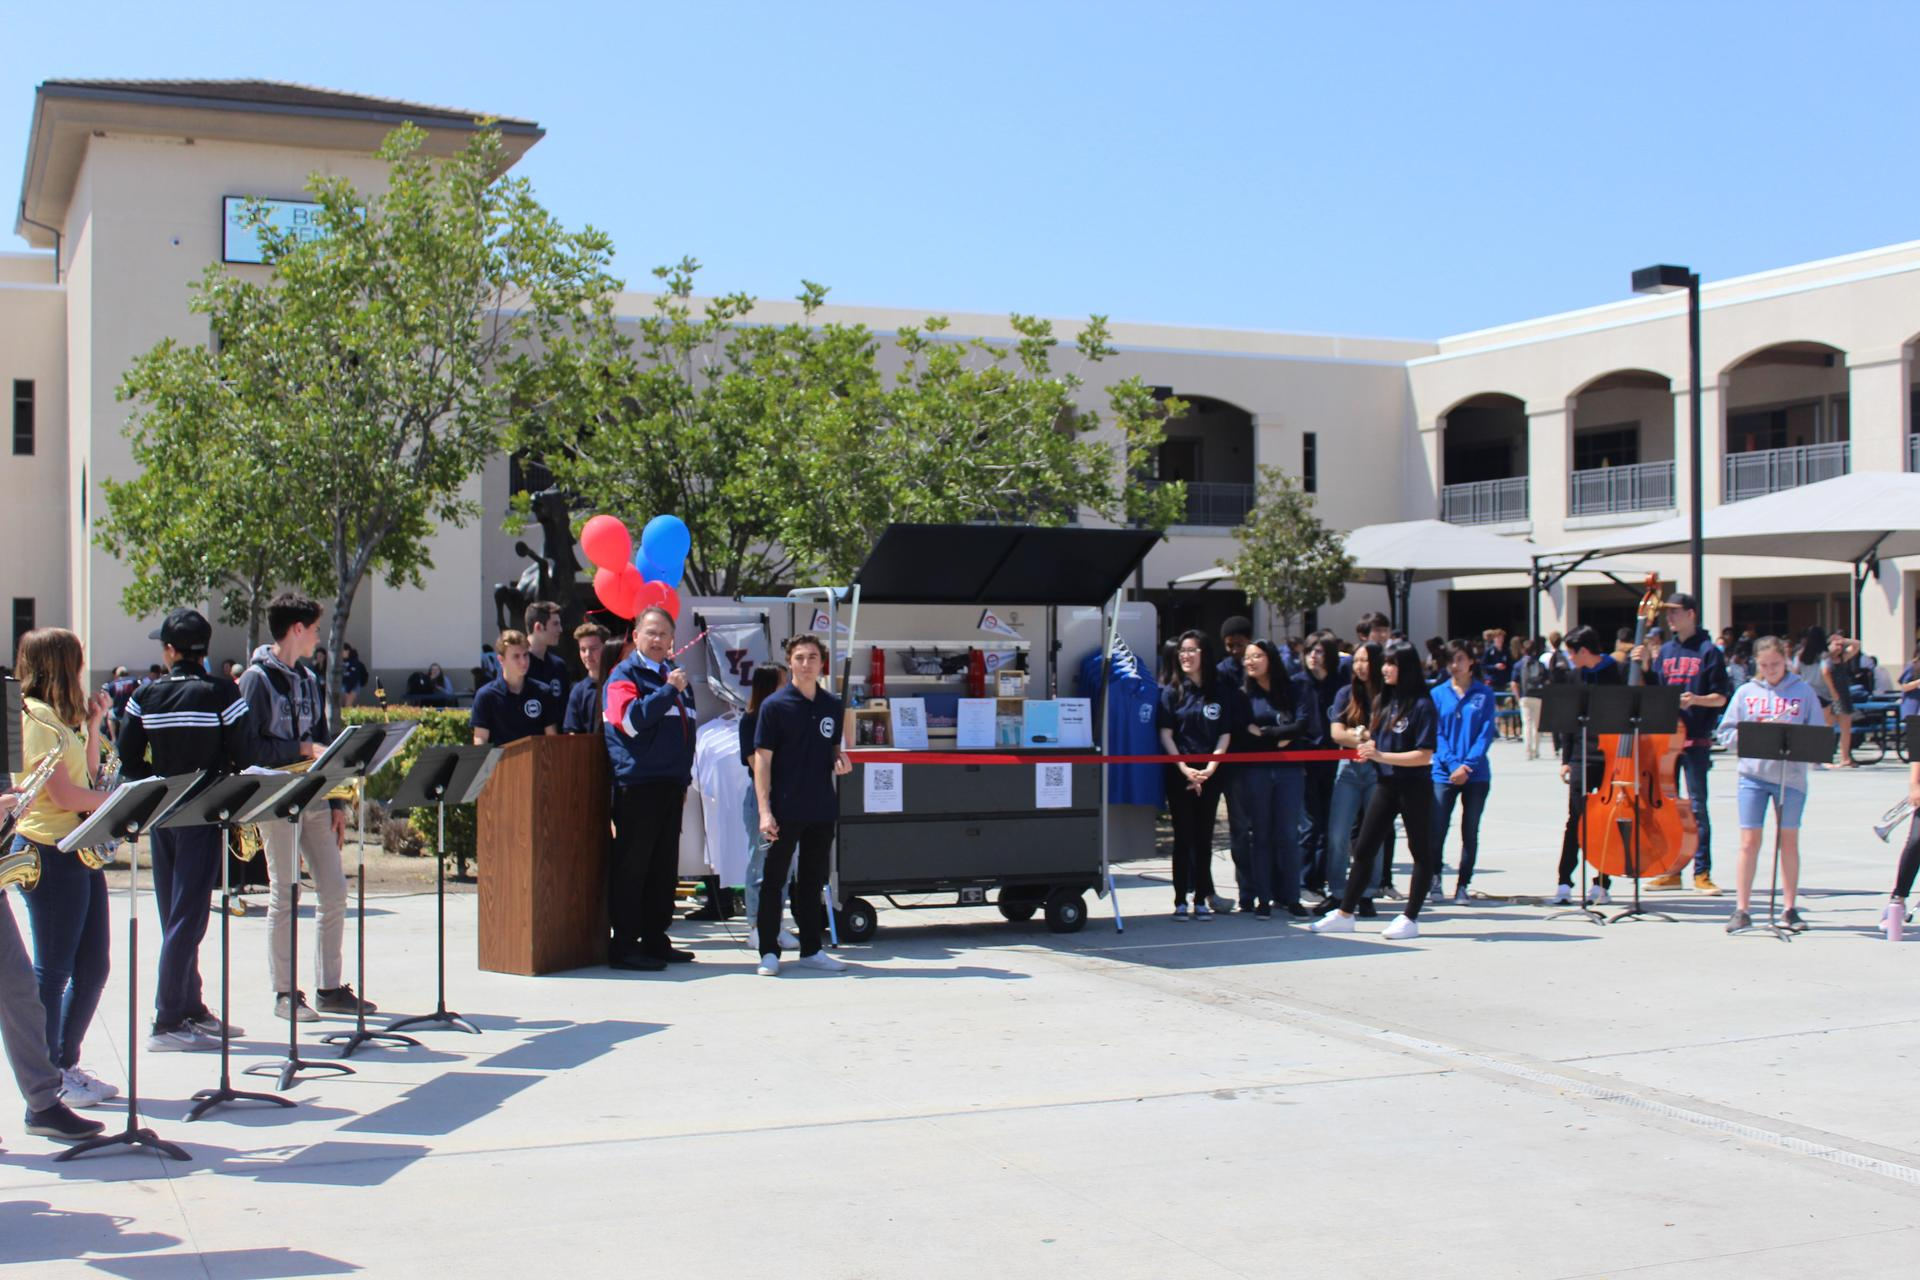 Grand Opening of the Mustang Market